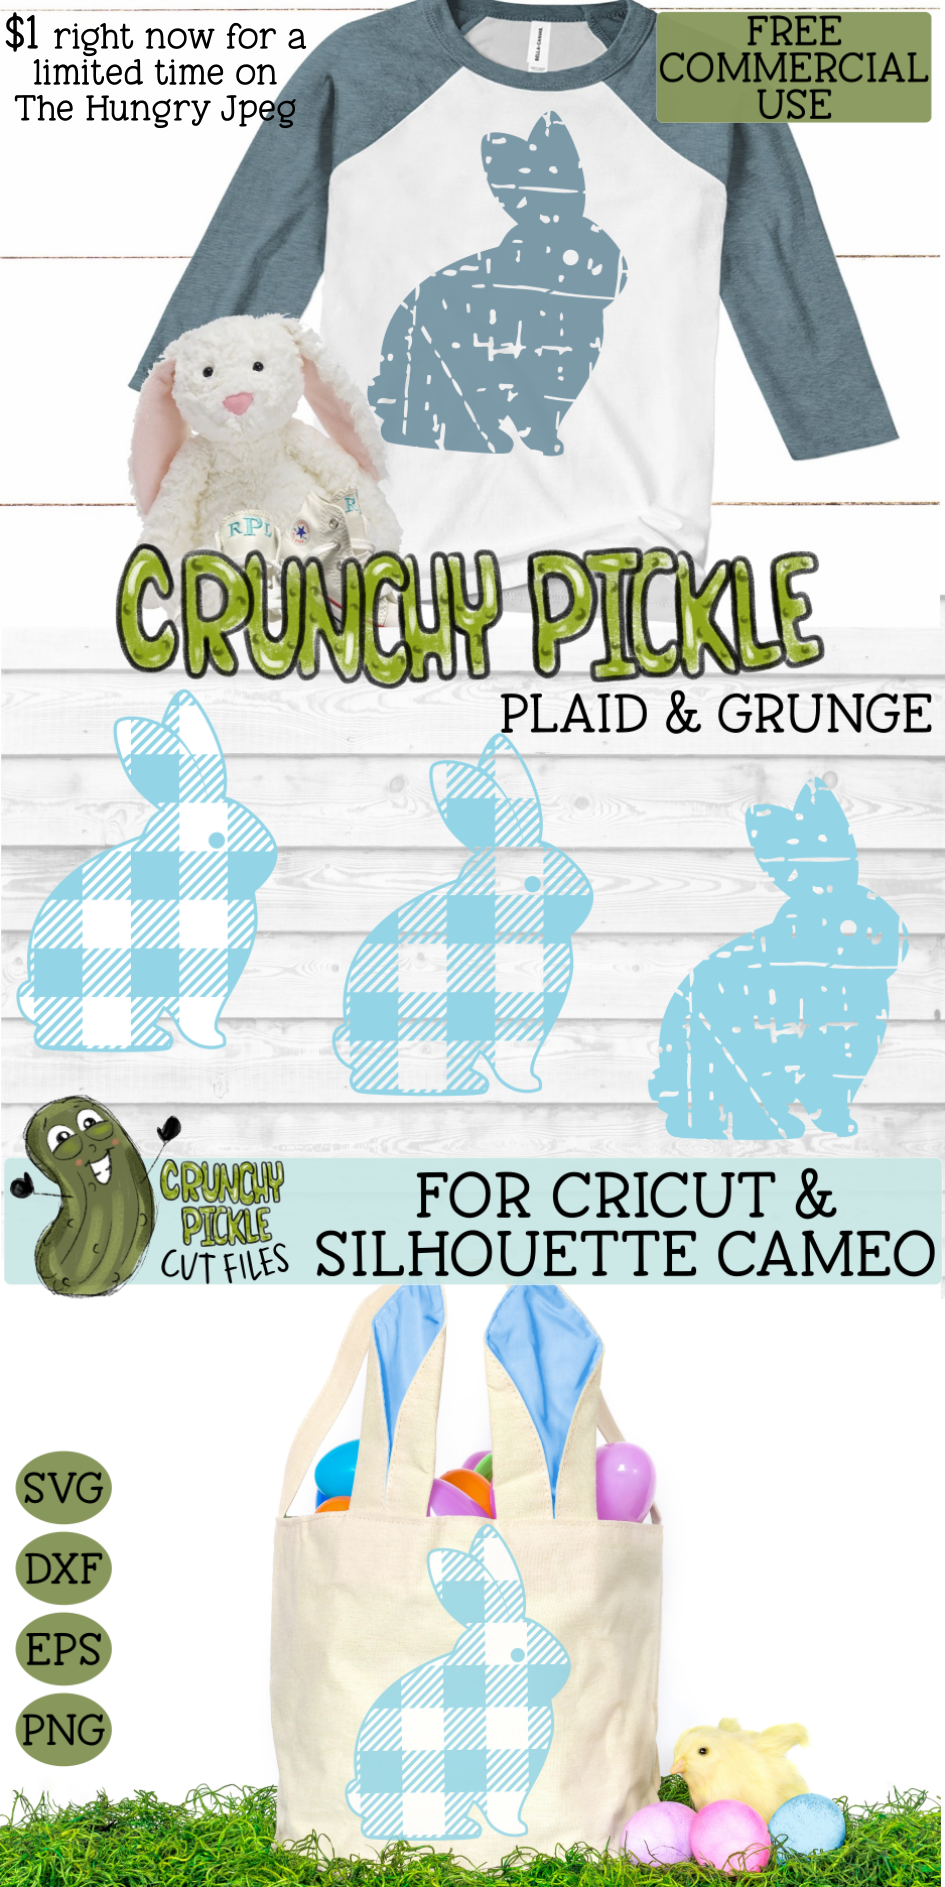 Plaid & Grunge Spring Easter Bunny 3 SVG Cut File example image 4